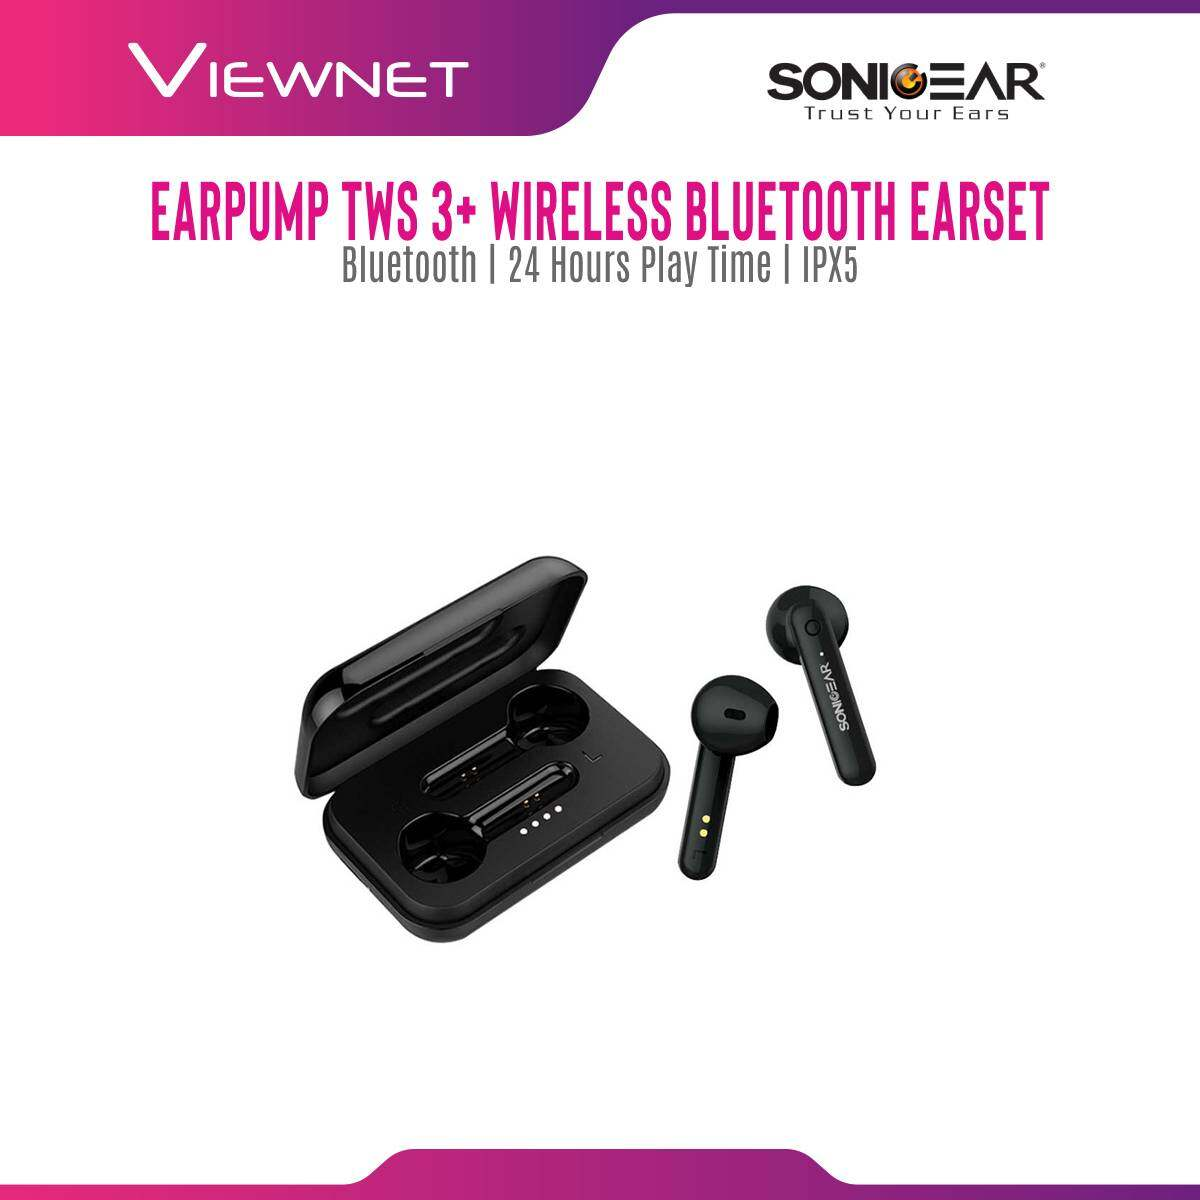 Sonicgear Wireless Earbuds TWS 3+ with Bluetooth 5.0, 24 hours playtime, IPX 5, Super Mic Reception, Up to 6Hours @ 50% Volume,Touch Control, Voice Assistant, Mini Lightweight